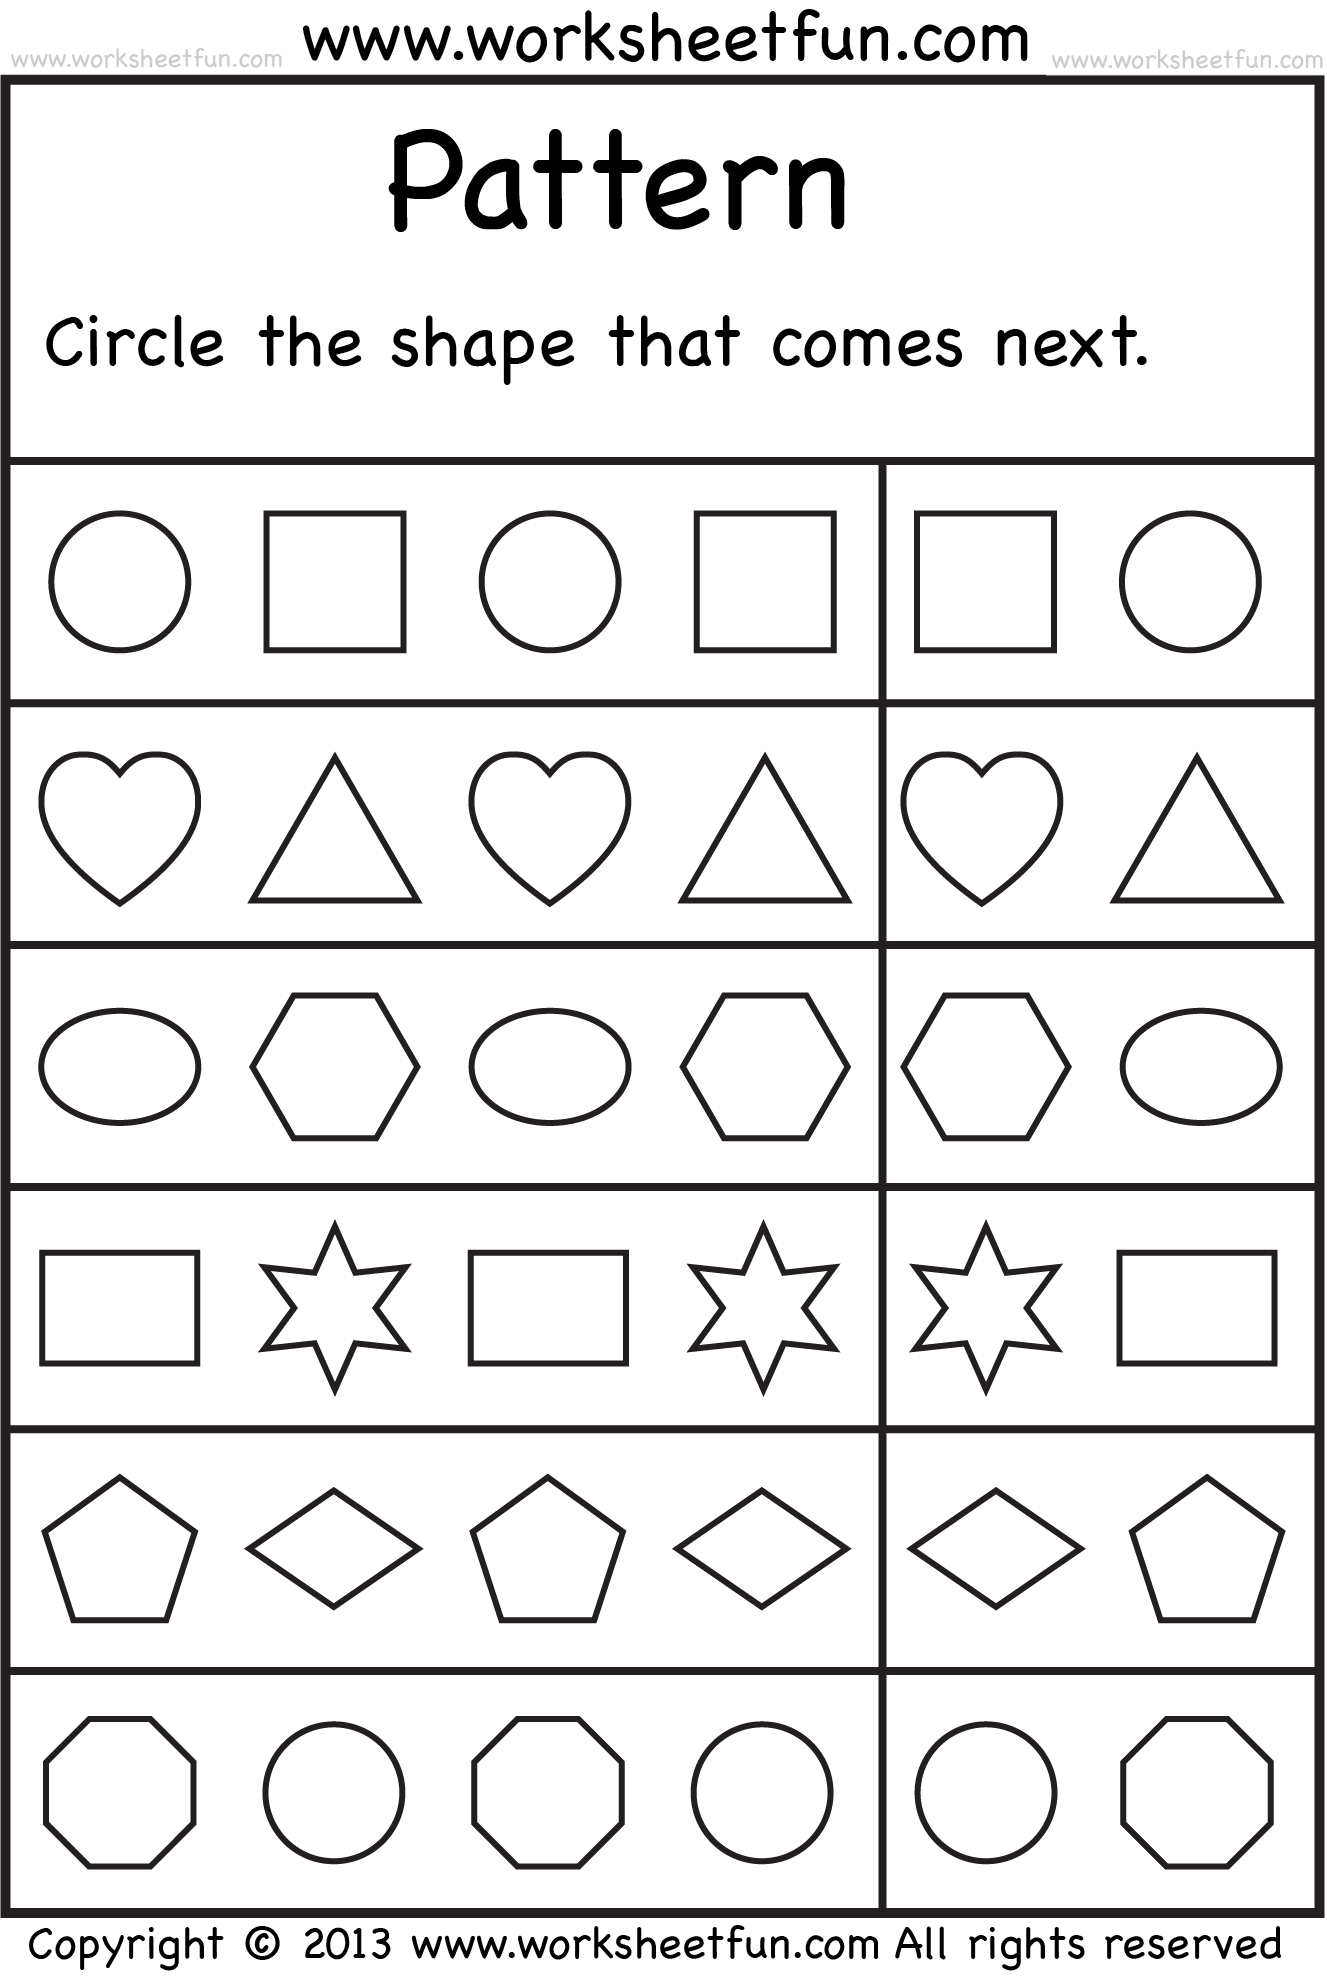 Patterns For Kindergarten Best Inspiration Design